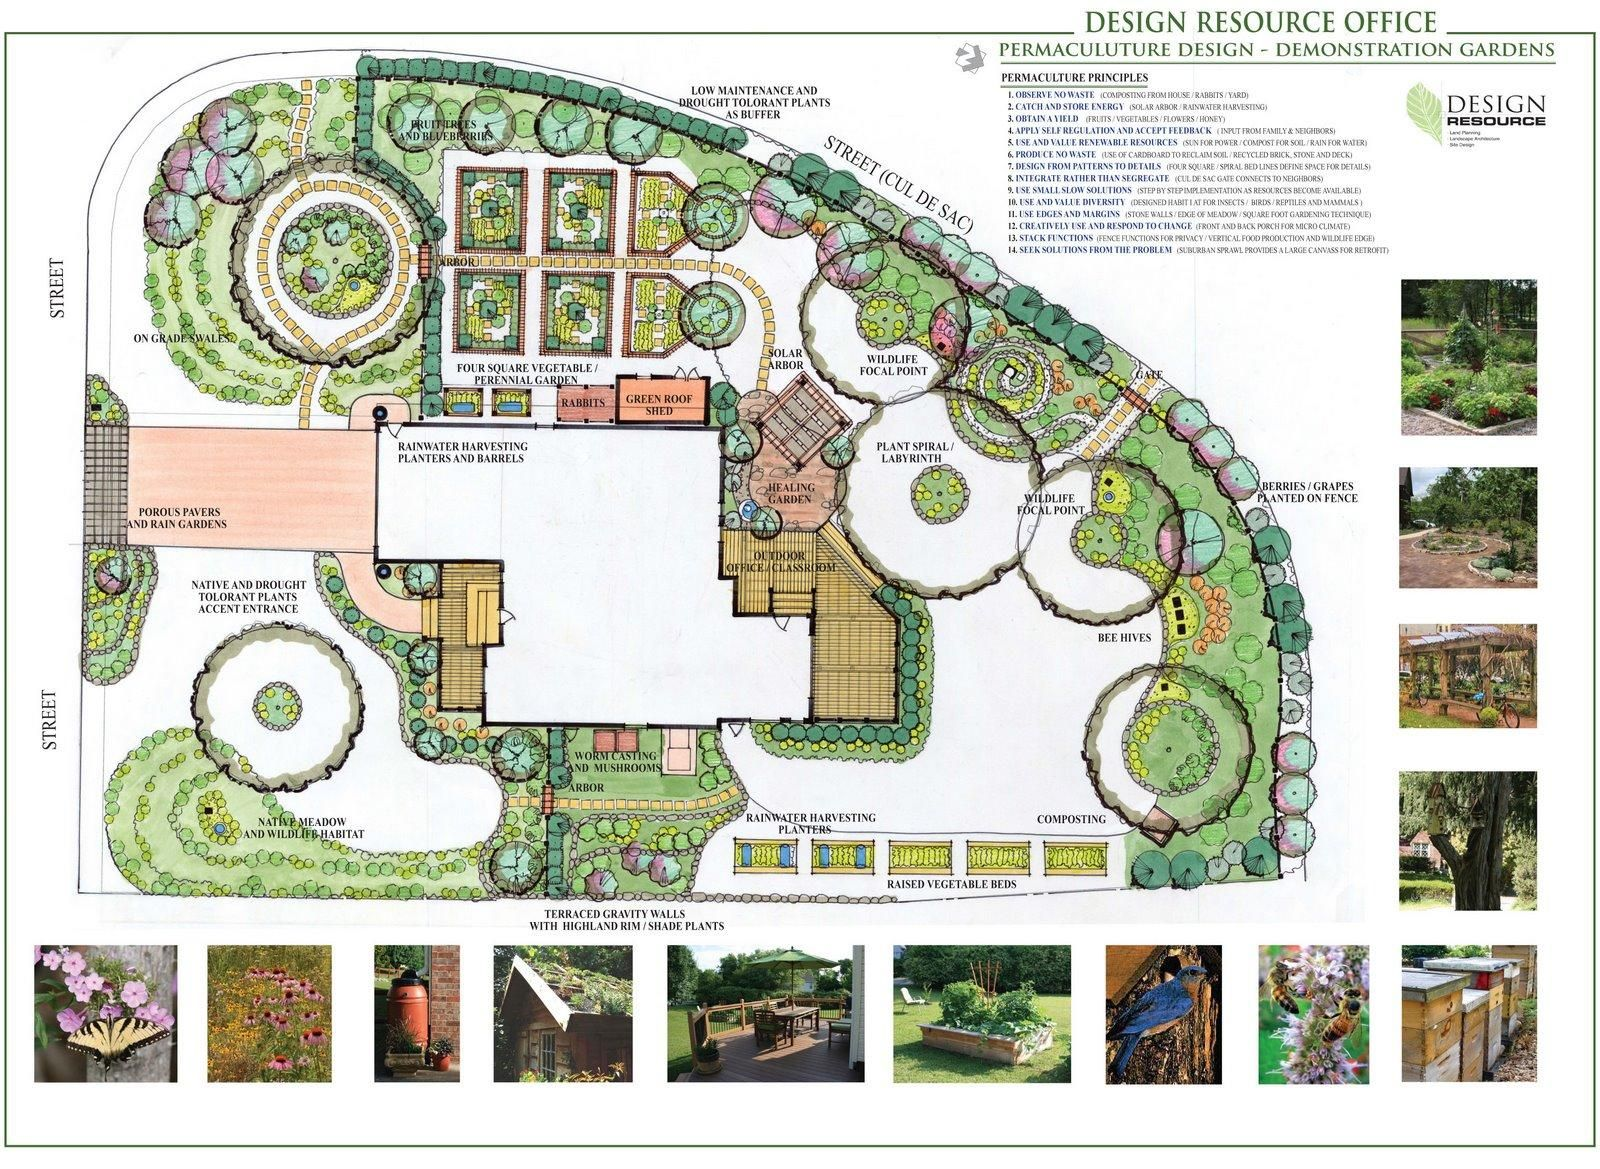 Awesome Free Landscape Design Tool #4 - Permaculture Design ...